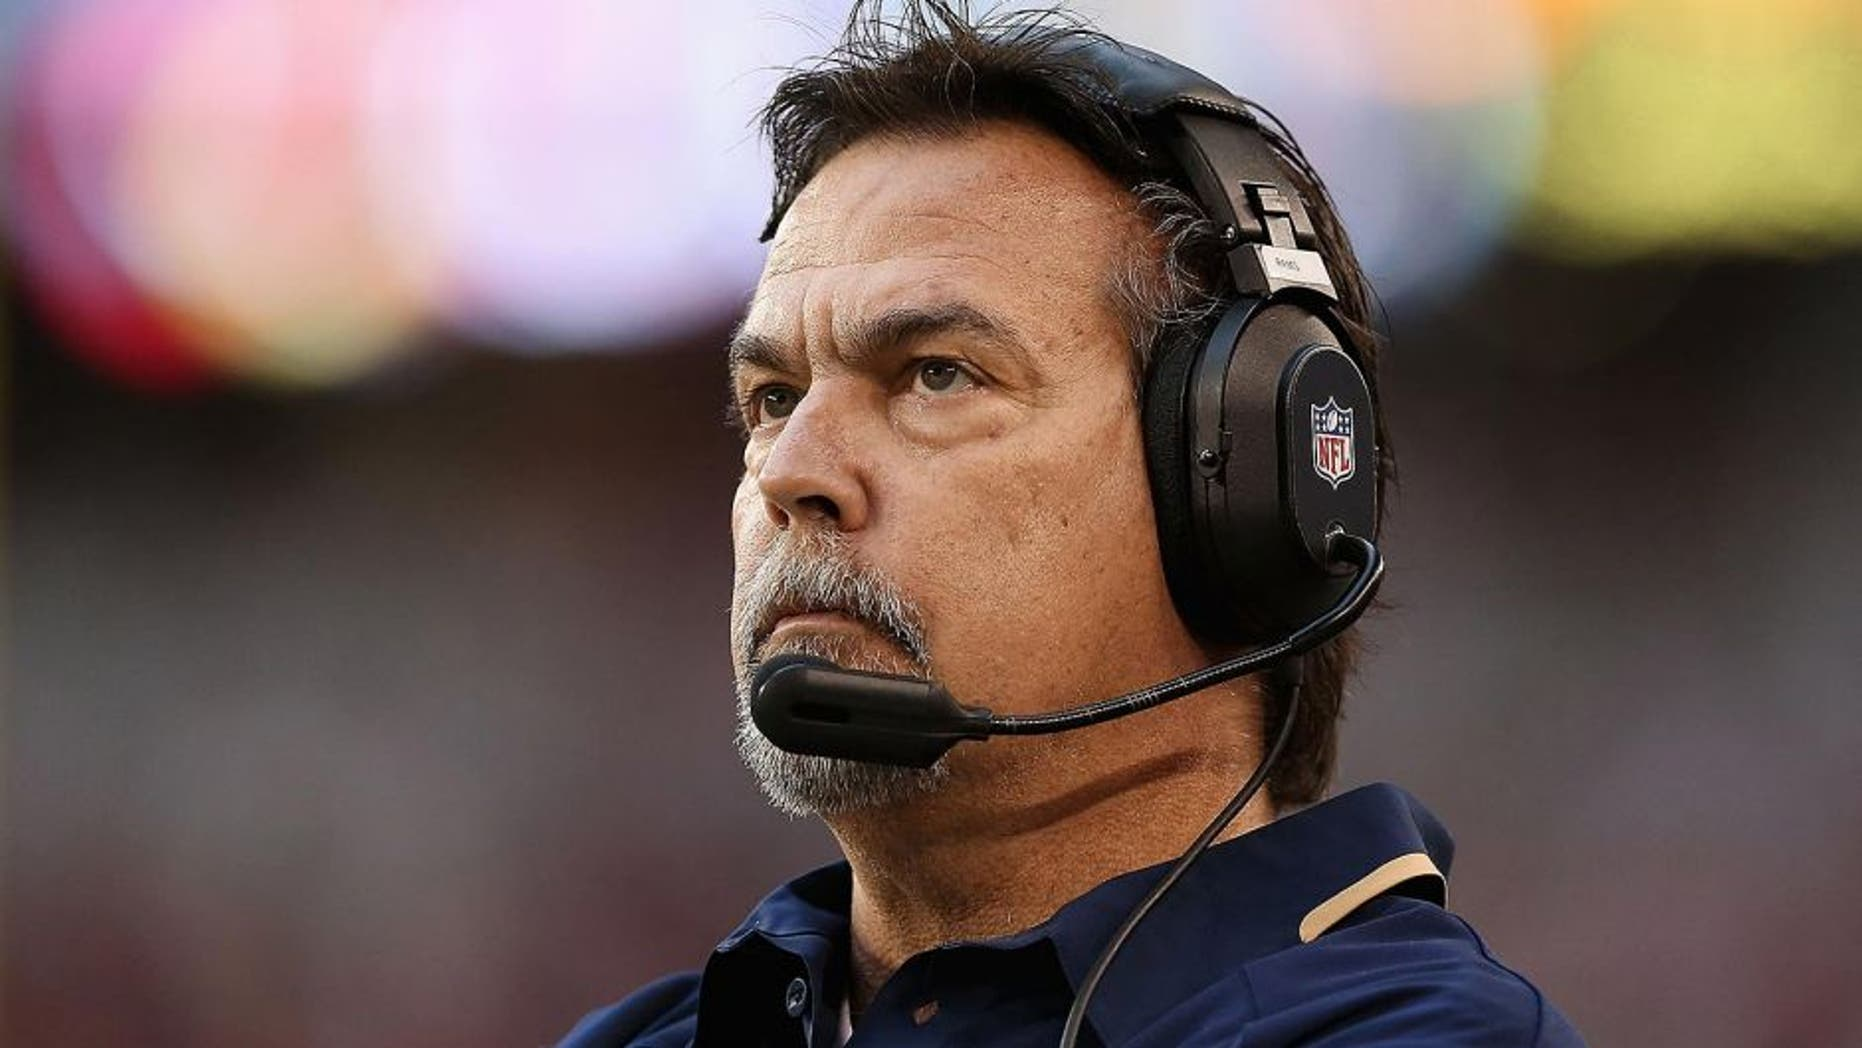 GLENDALE, AZ - DECEMBER 08: Head coach Jeff Fisher of the St. Louis Rams reacts on the sidelines during the NFL game against the Arizona Cardinals at the University of Phoenix Stadium on December 8, 2013 in Glendale, Arizona. (Photo by Christian Petersen/Getty Images)